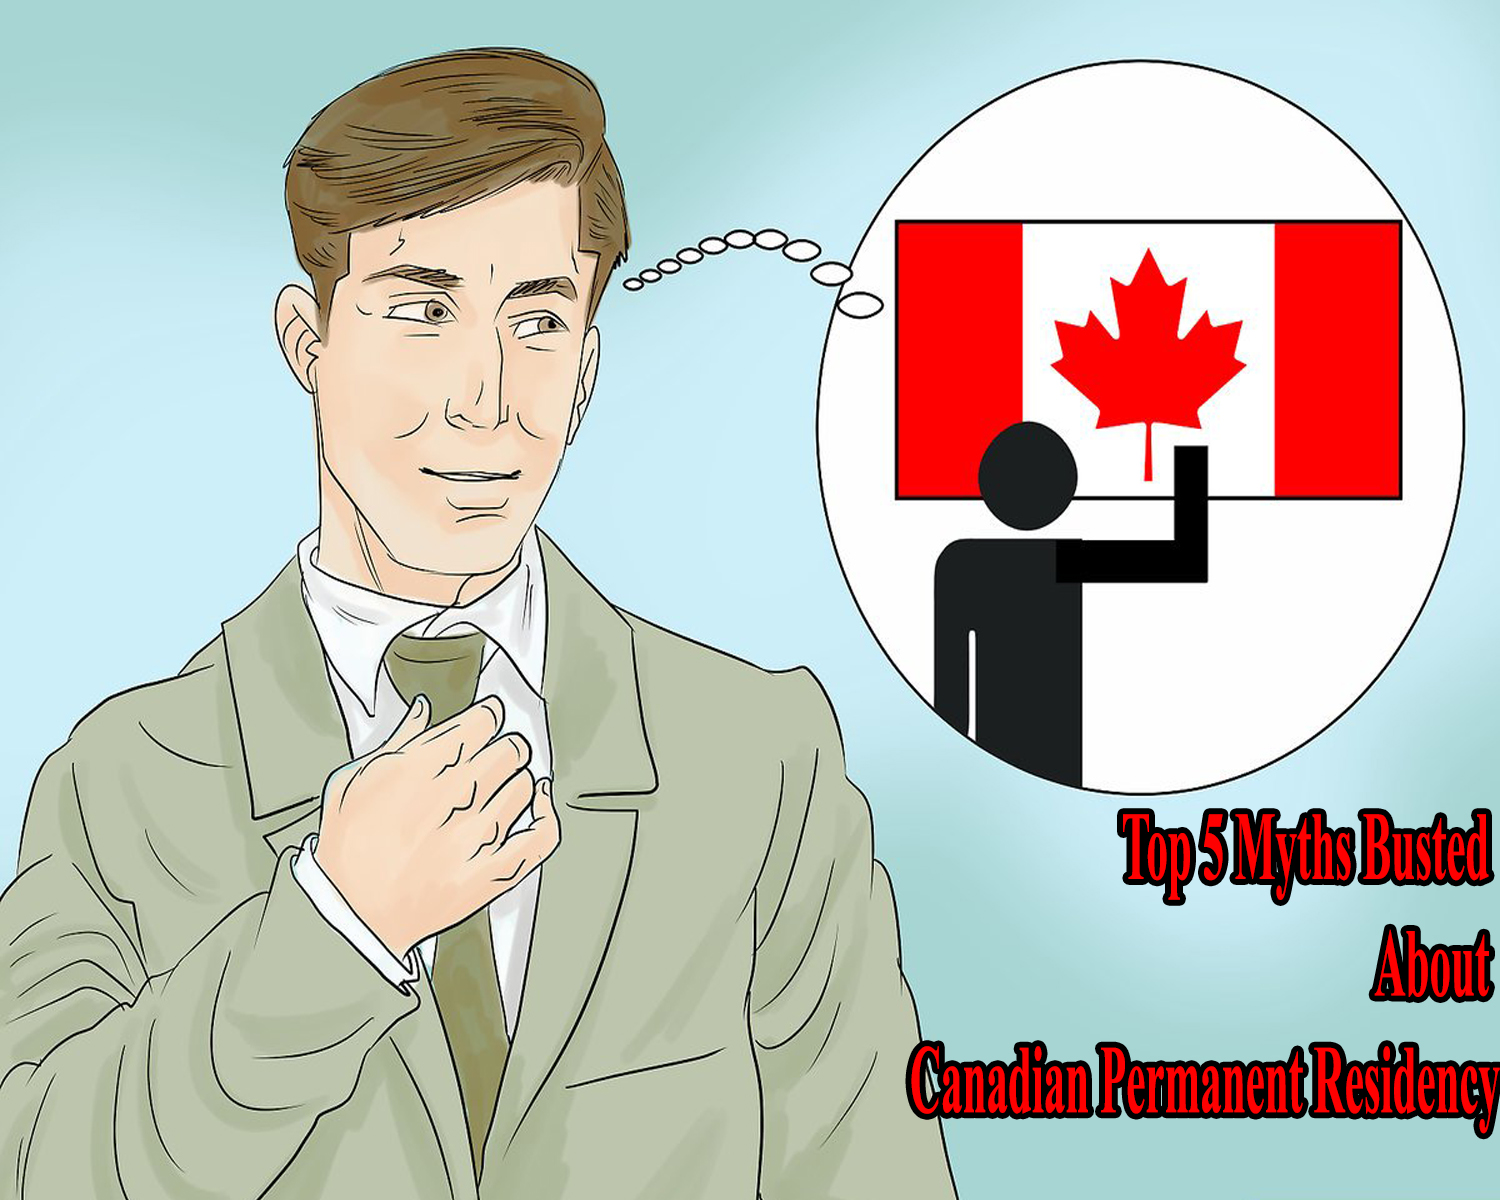 Canadian permanent residence.